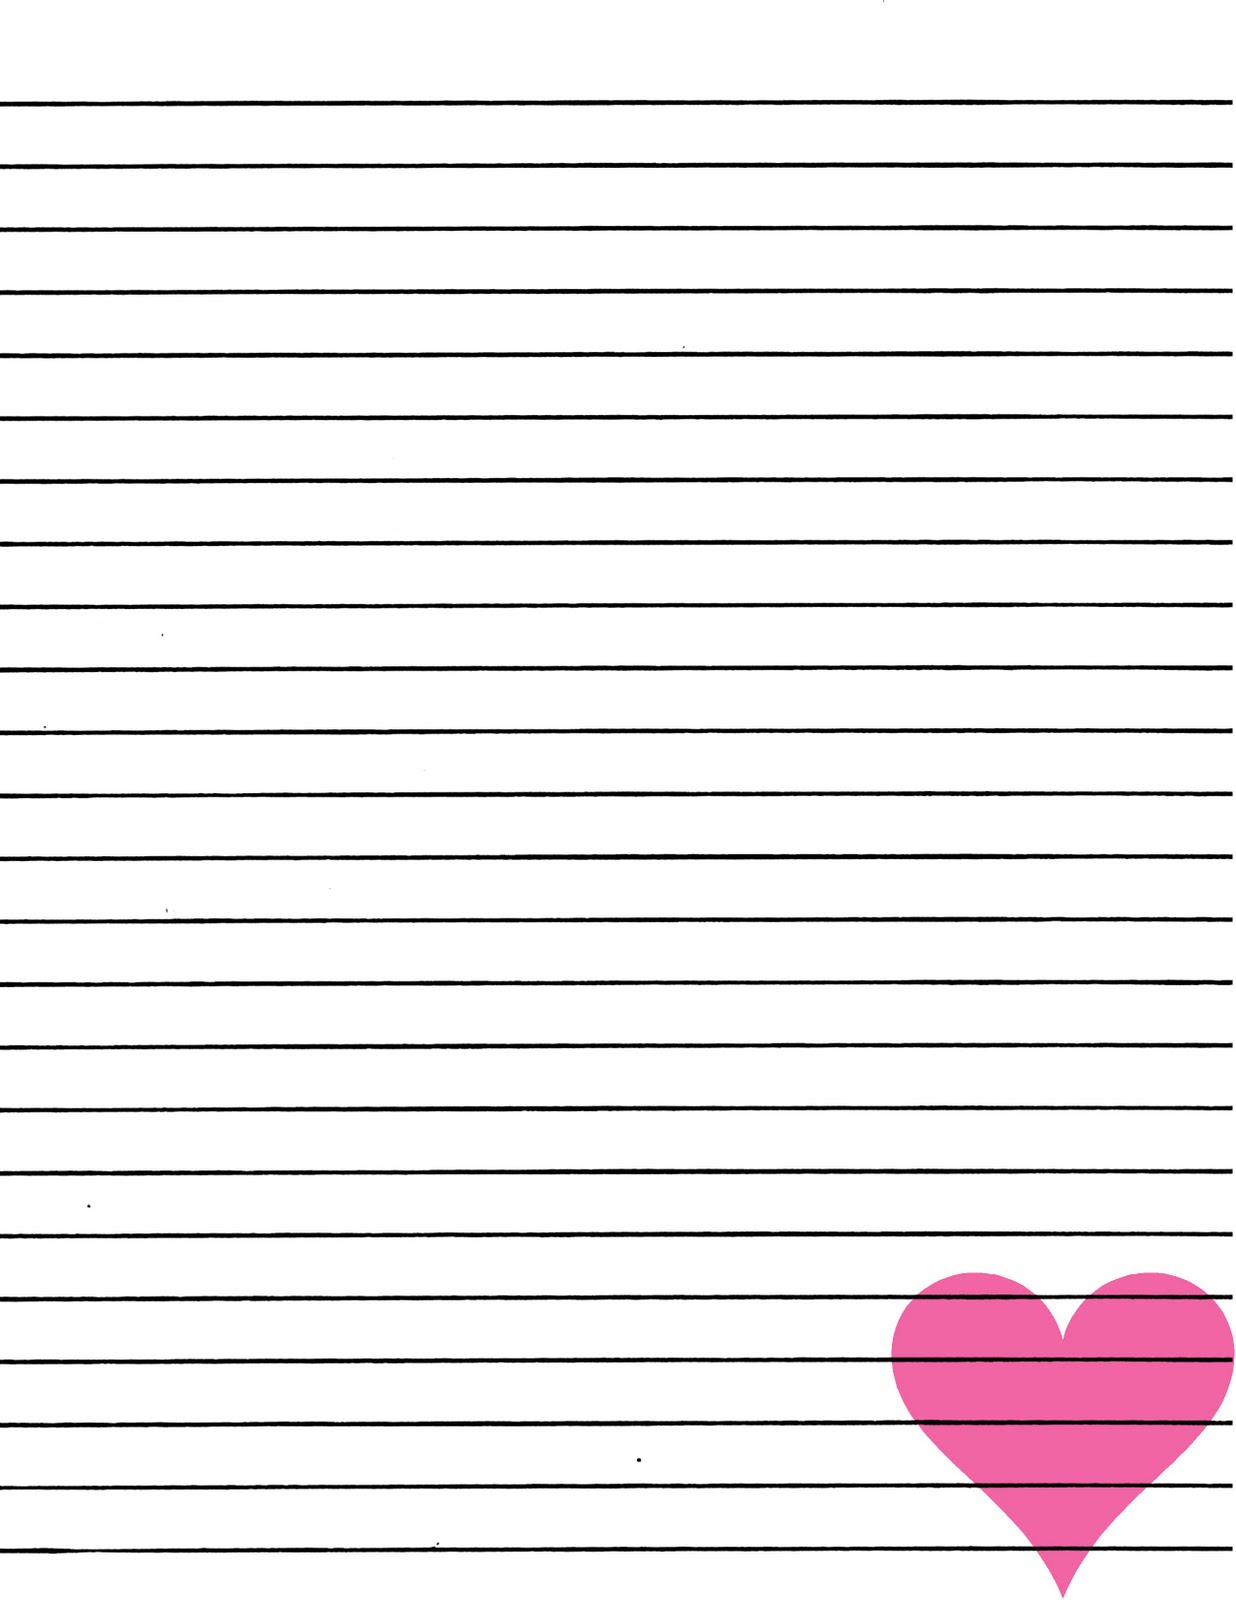 Kindergarten print line clipart image black and white download free printable writing practice paper one inch lines kindergarten ... image black and white download